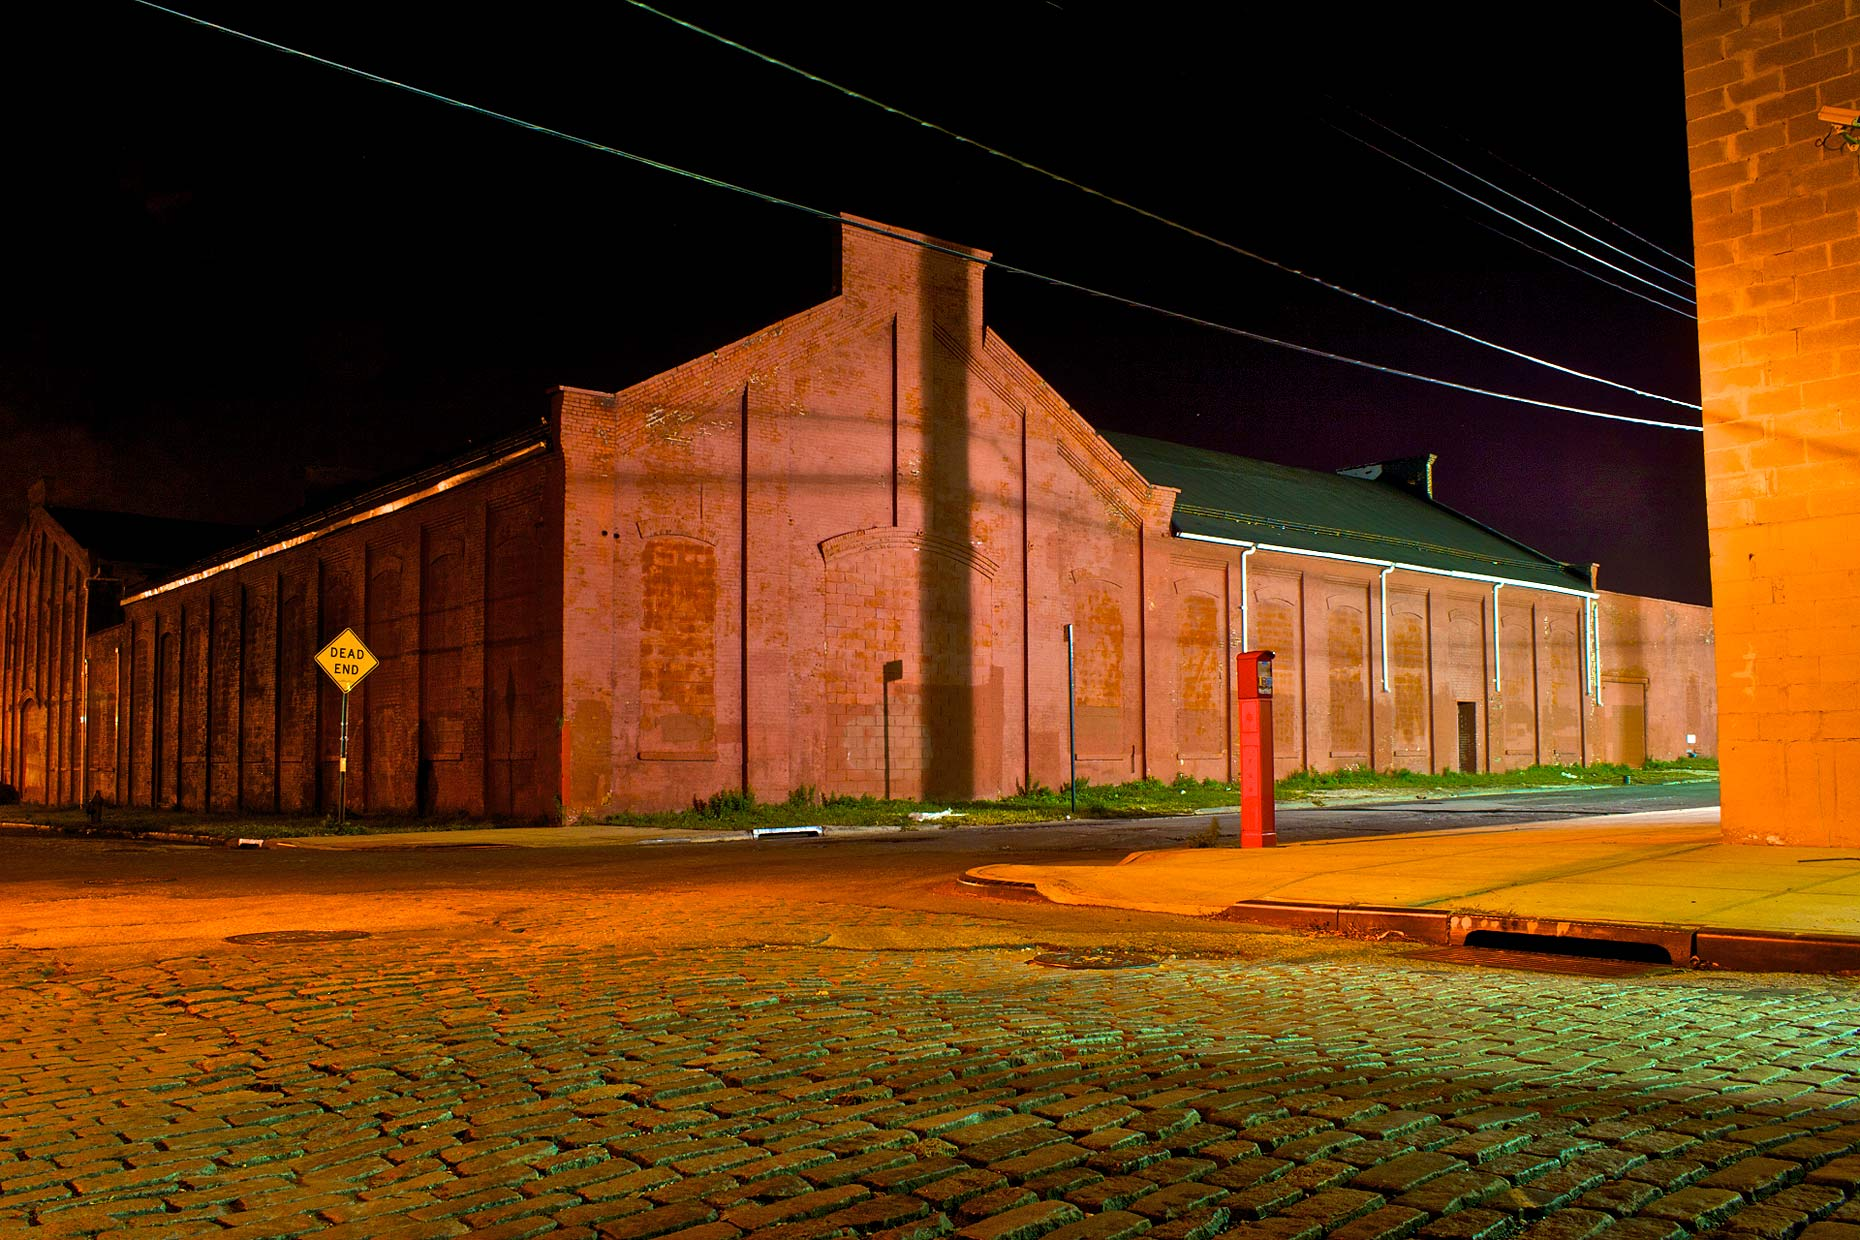 warehouse-at-night.jpg